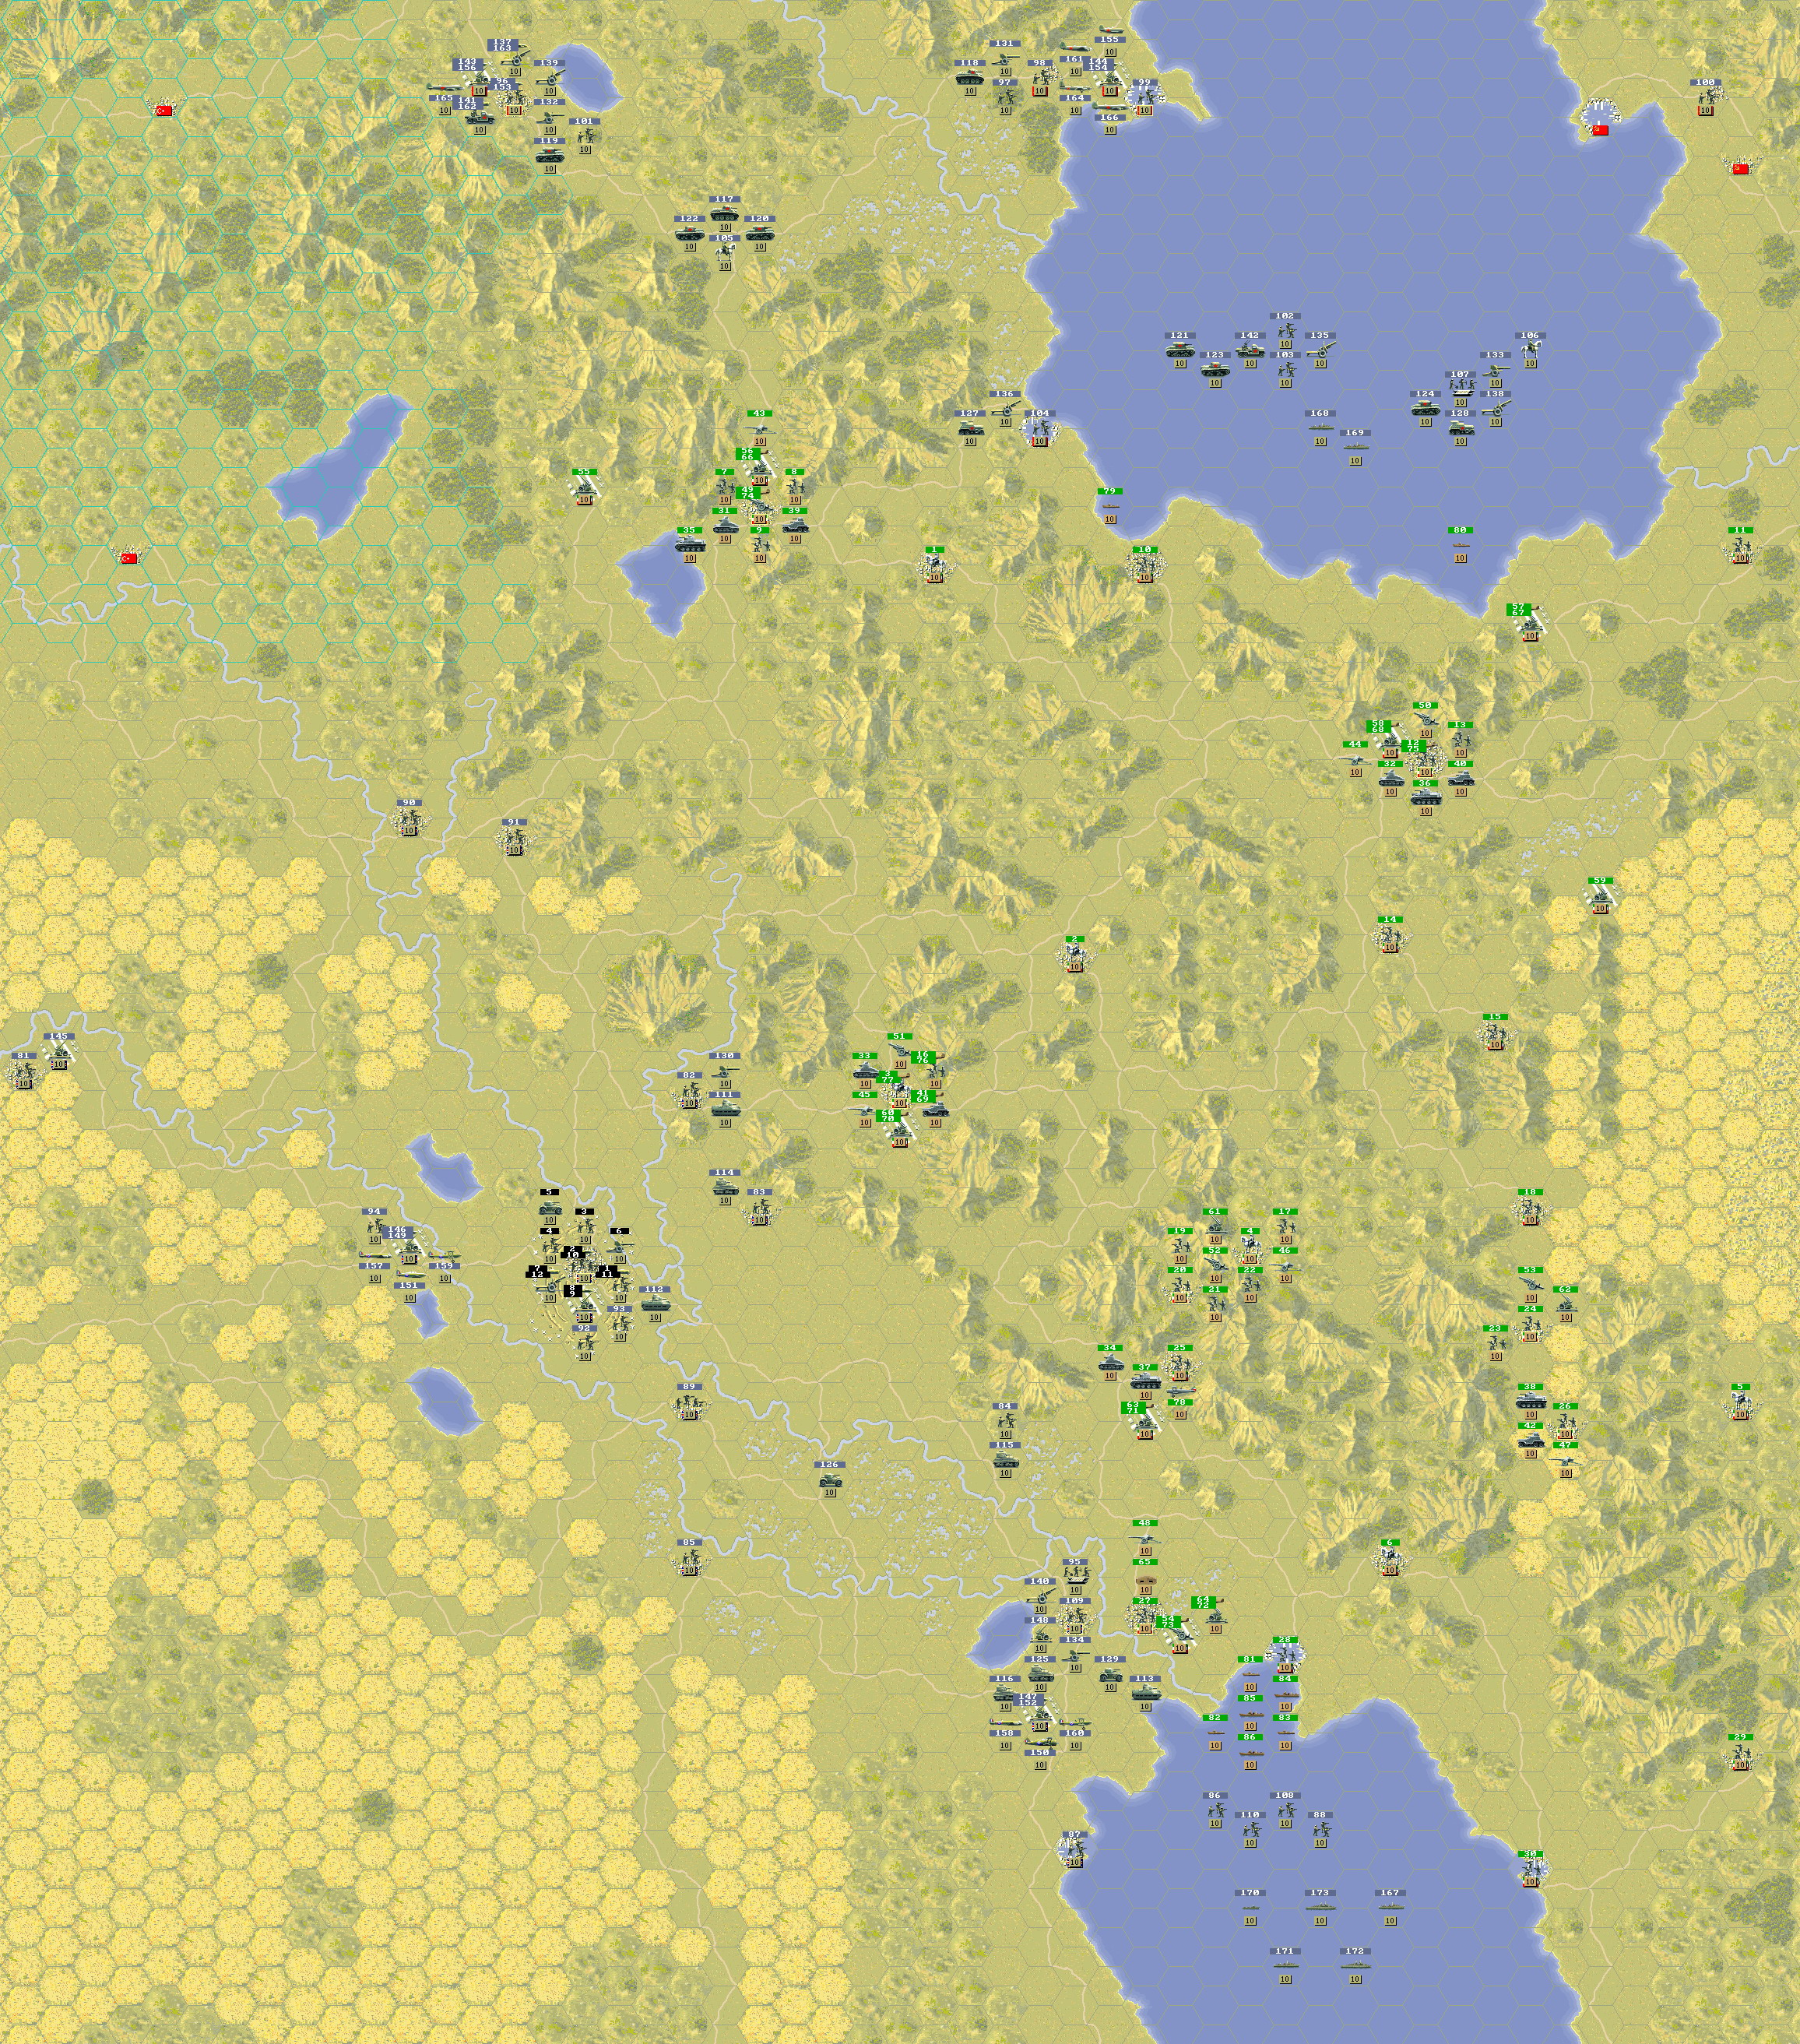 Tactical map (large & detail):